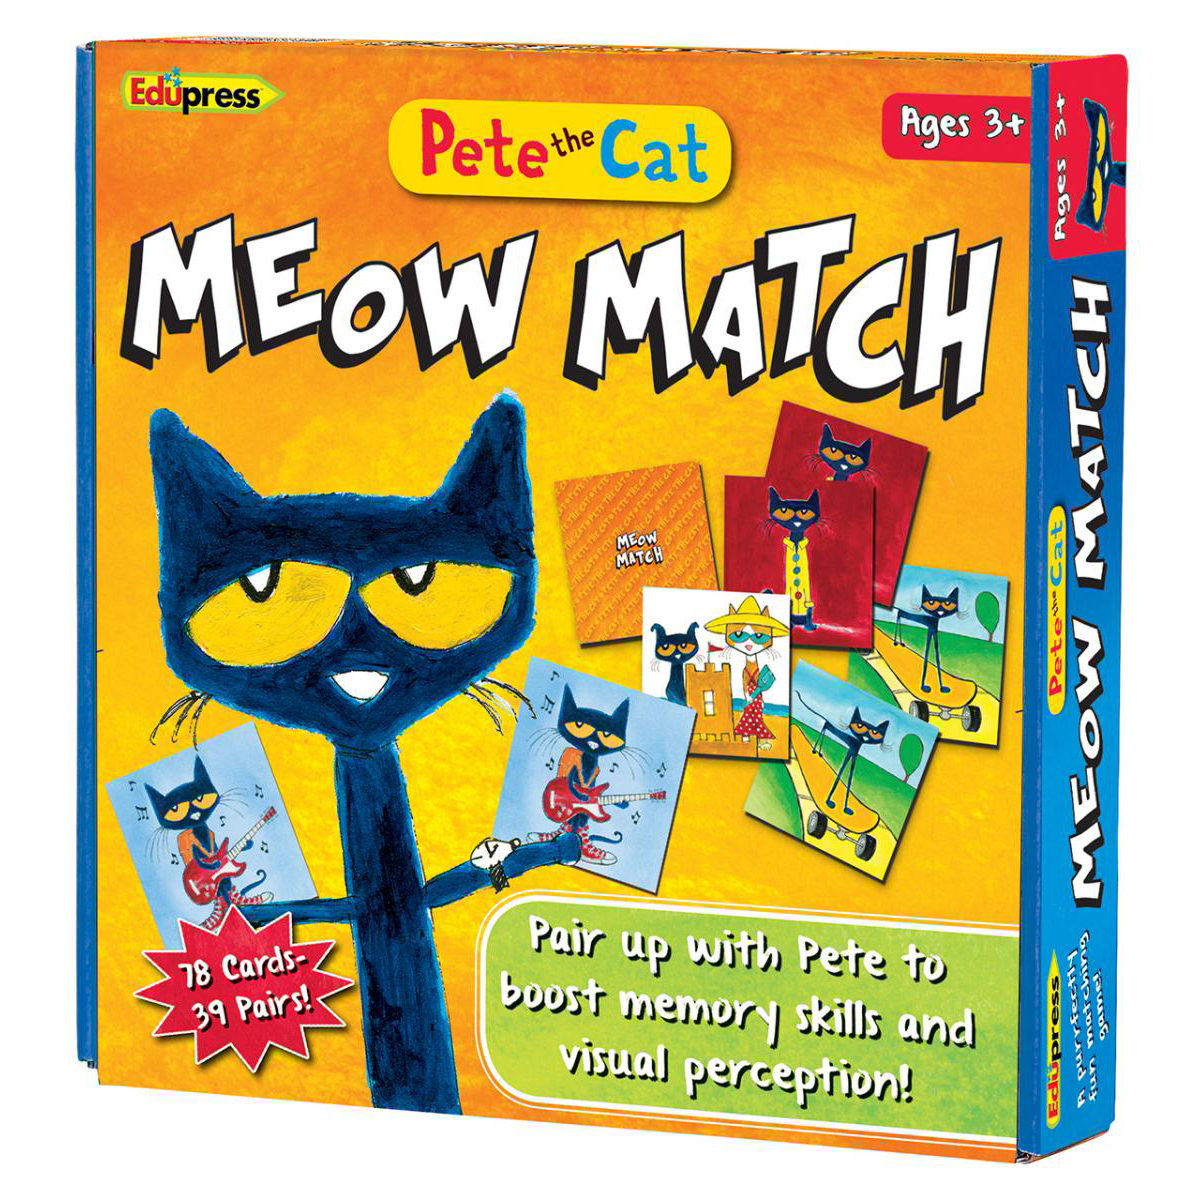 Pete the Cat© Meow Match Game